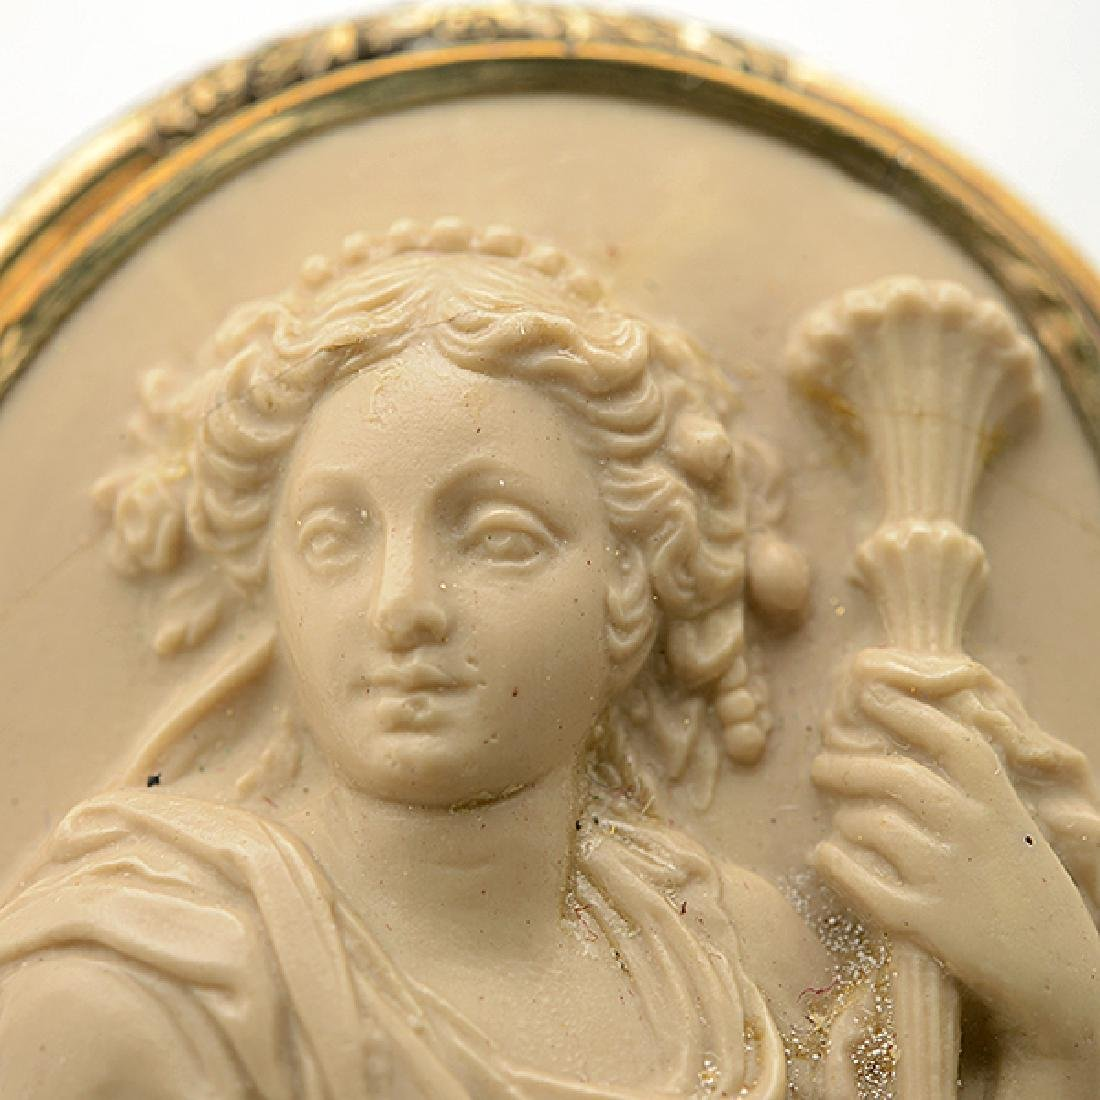 Lava Cameo, Gold-Filled Brooch. - 2